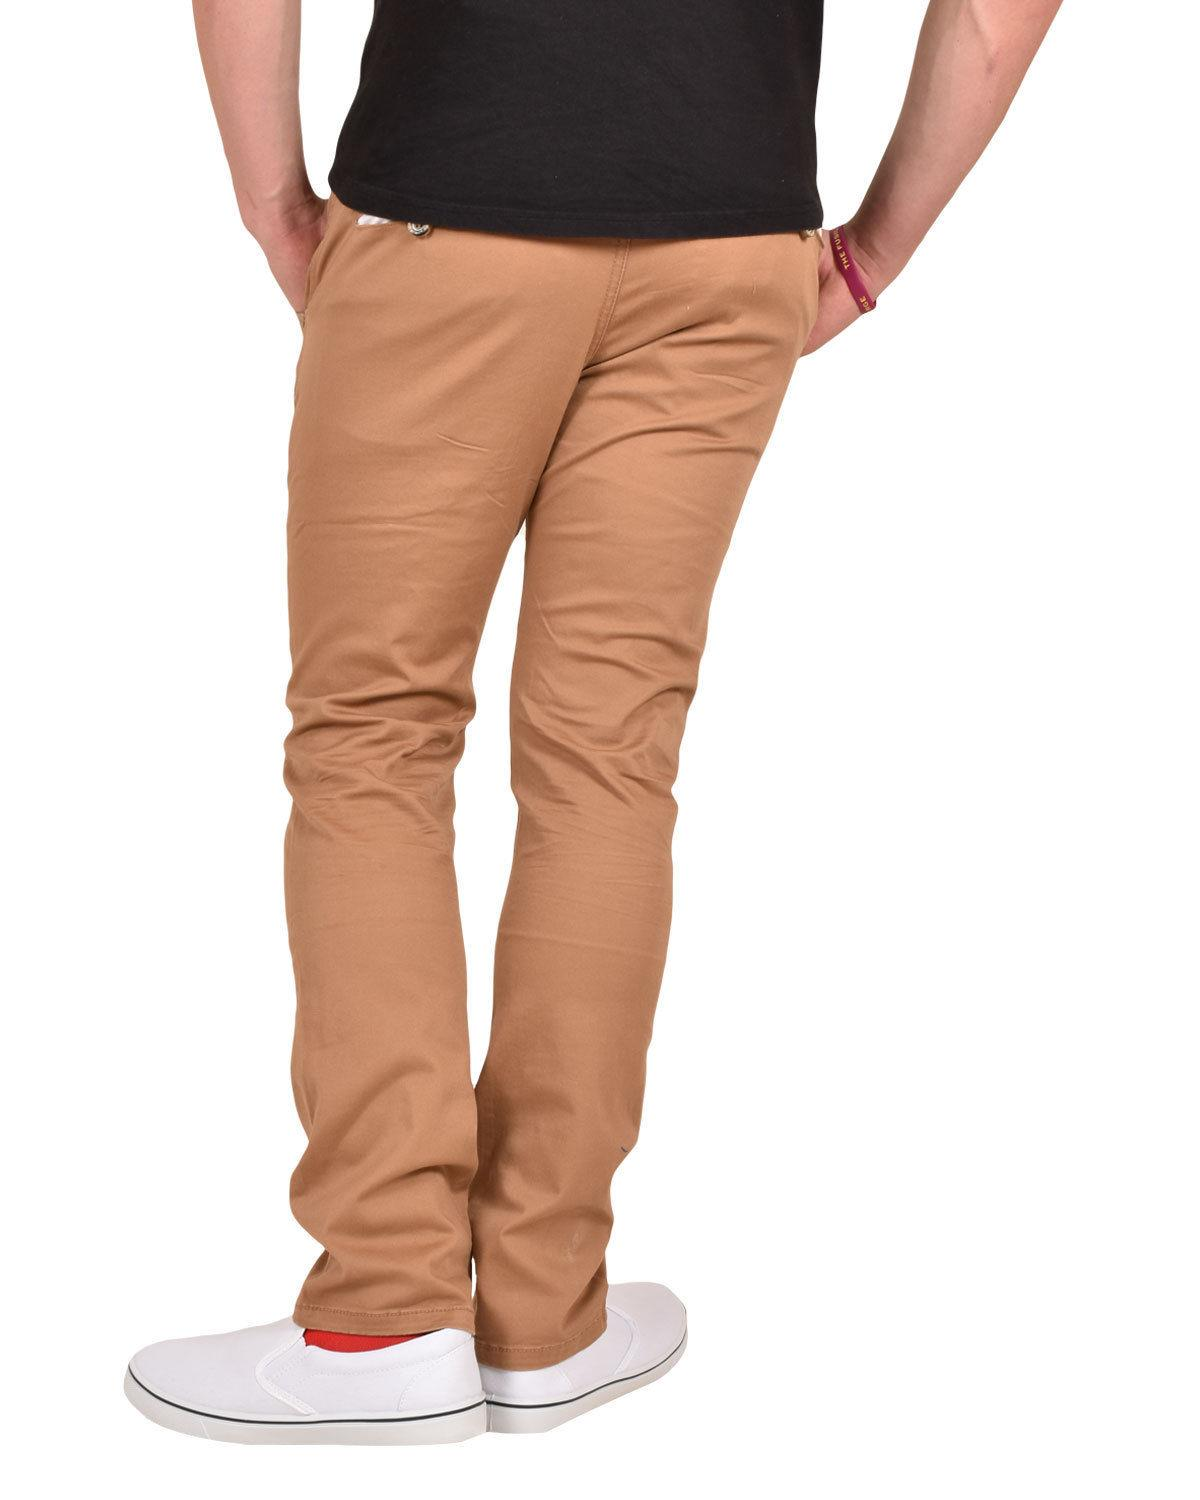 New-Mens-Designer-Jacksouth-Chino-Regular-Fit-Stretch-Cotton-Rich-Twill-Trousers thumbnail 37